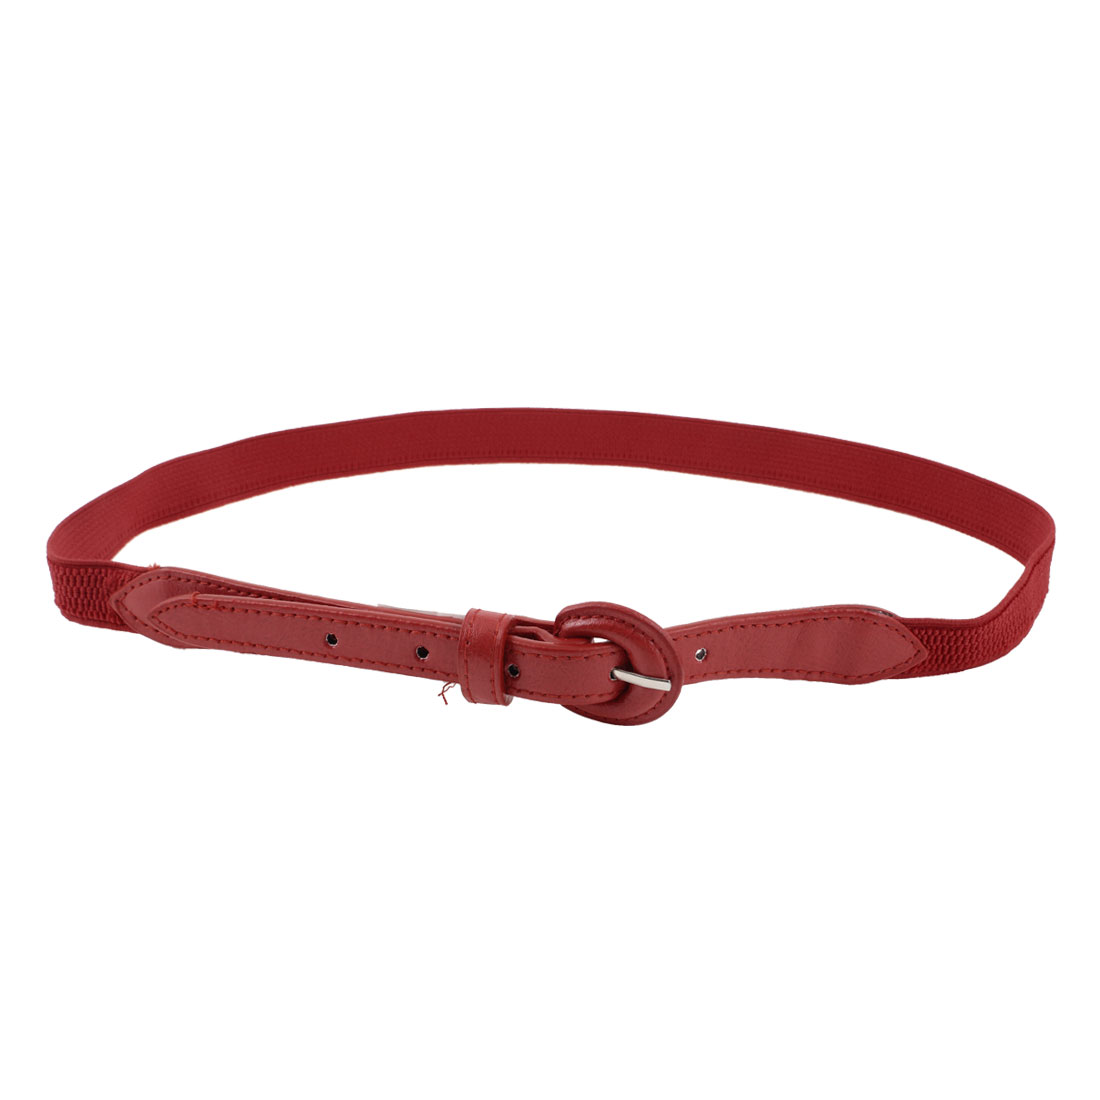 "Ladies Single Prong Buckle 0.8"" Wide Red Faux Leather Cinch Waist Belt"